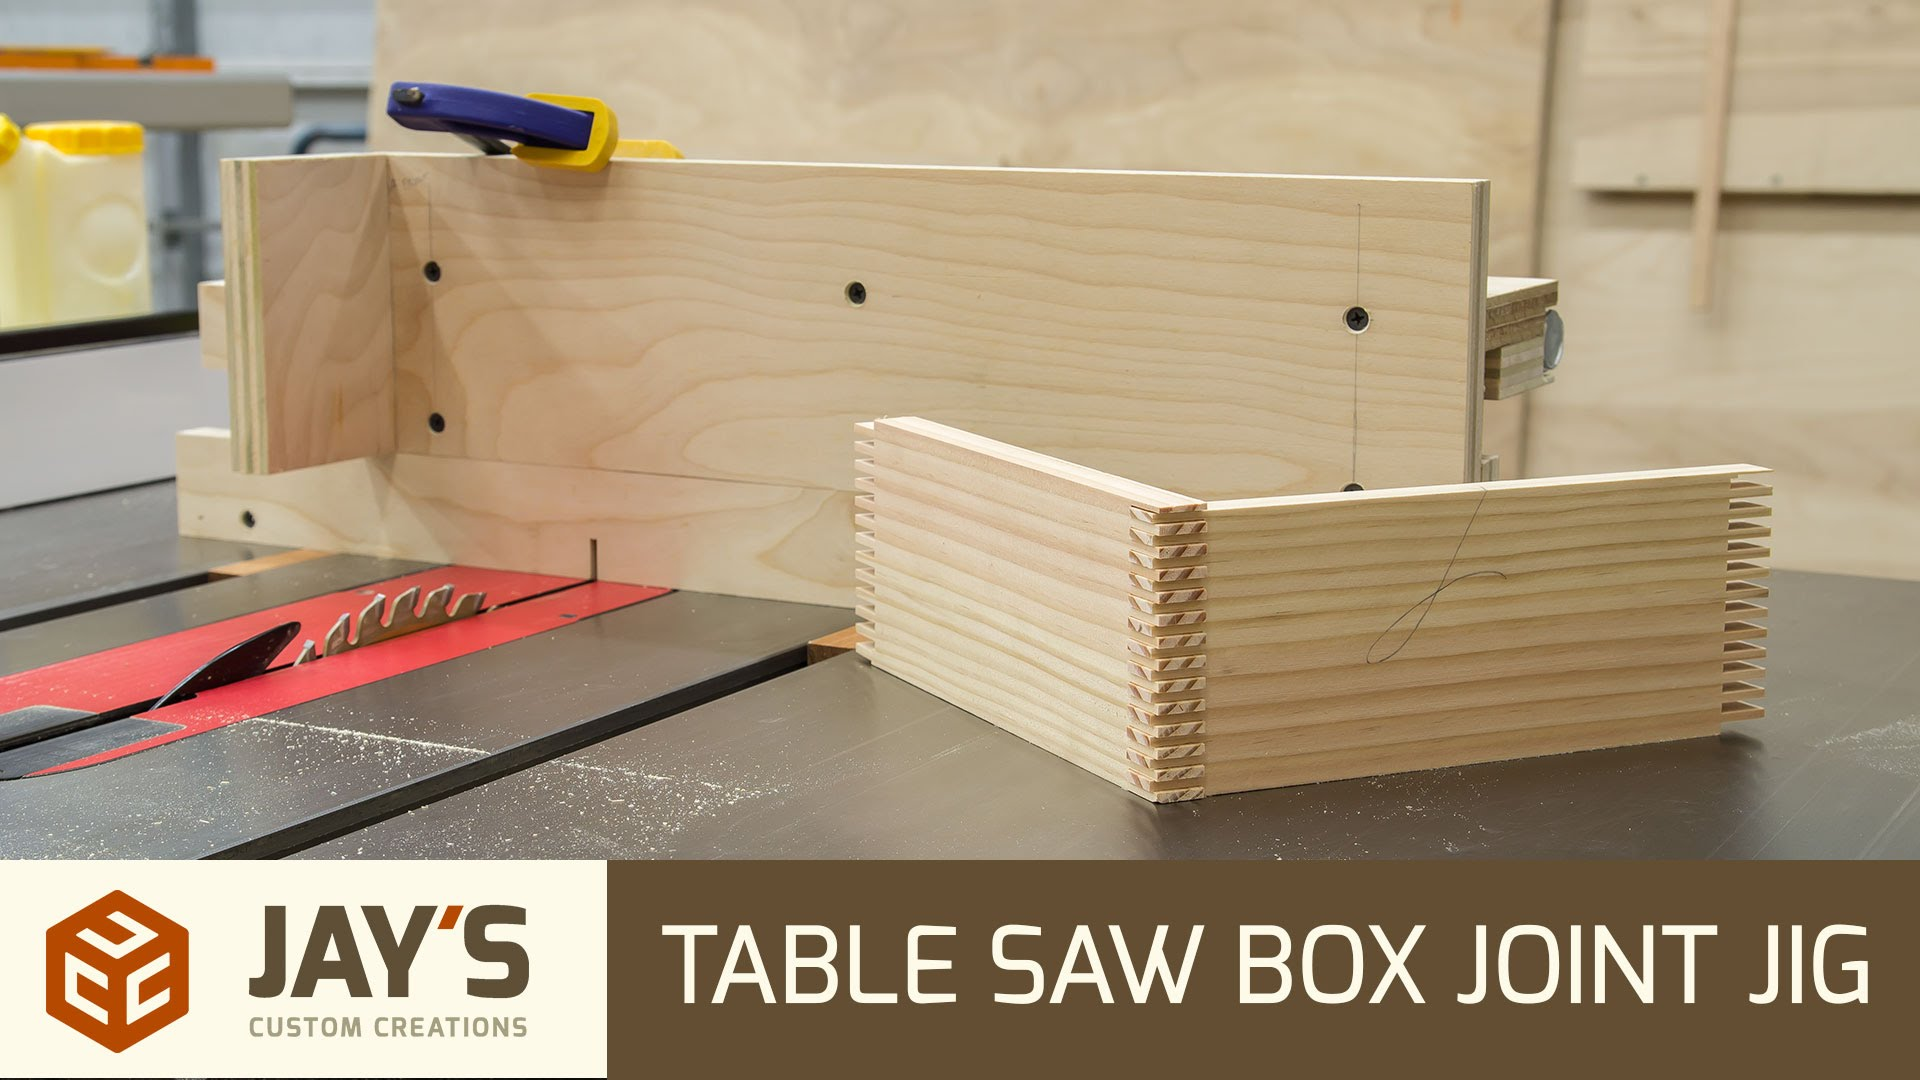 Table saw box joint jig jays custom creations greentooth Images